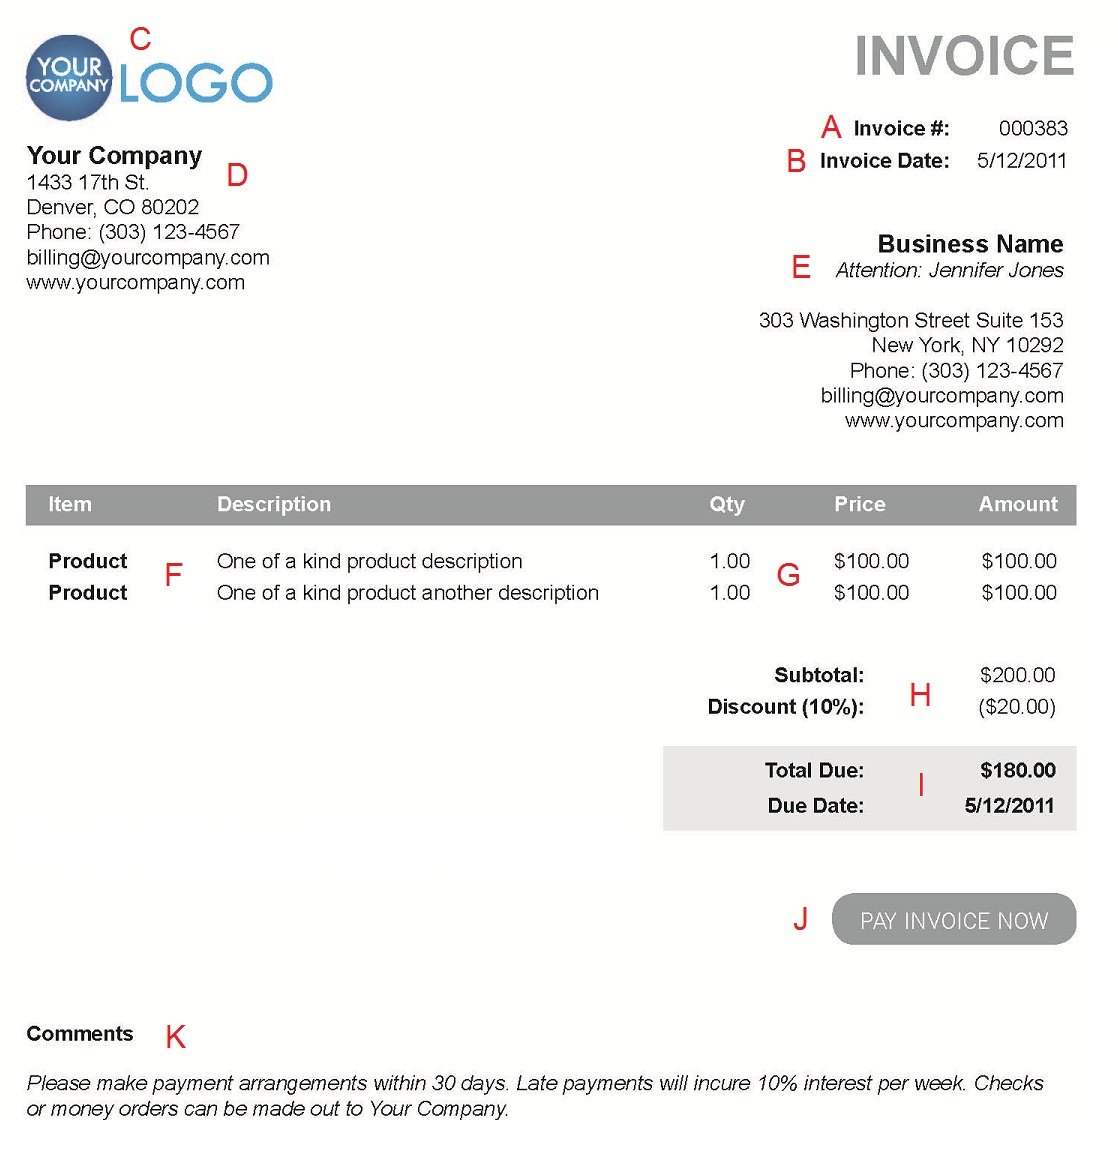 Ultrablogus  Outstanding The  Different Sections Of An Electronic Payment Invoice With Entrancing A  With Astounding Invoice Business Also Quick Invoices In Addition How To Submit An Invoice And Canadian Customs Invoice Instructions As Well As What Is The Difference Between Msrp And Invoice Price Additionally  Honda Accord Invoice From Paysimplecom With Ultrablogus  Entrancing The  Different Sections Of An Electronic Payment Invoice With Astounding A  And Outstanding Invoice Business Also Quick Invoices In Addition How To Submit An Invoice From Paysimplecom